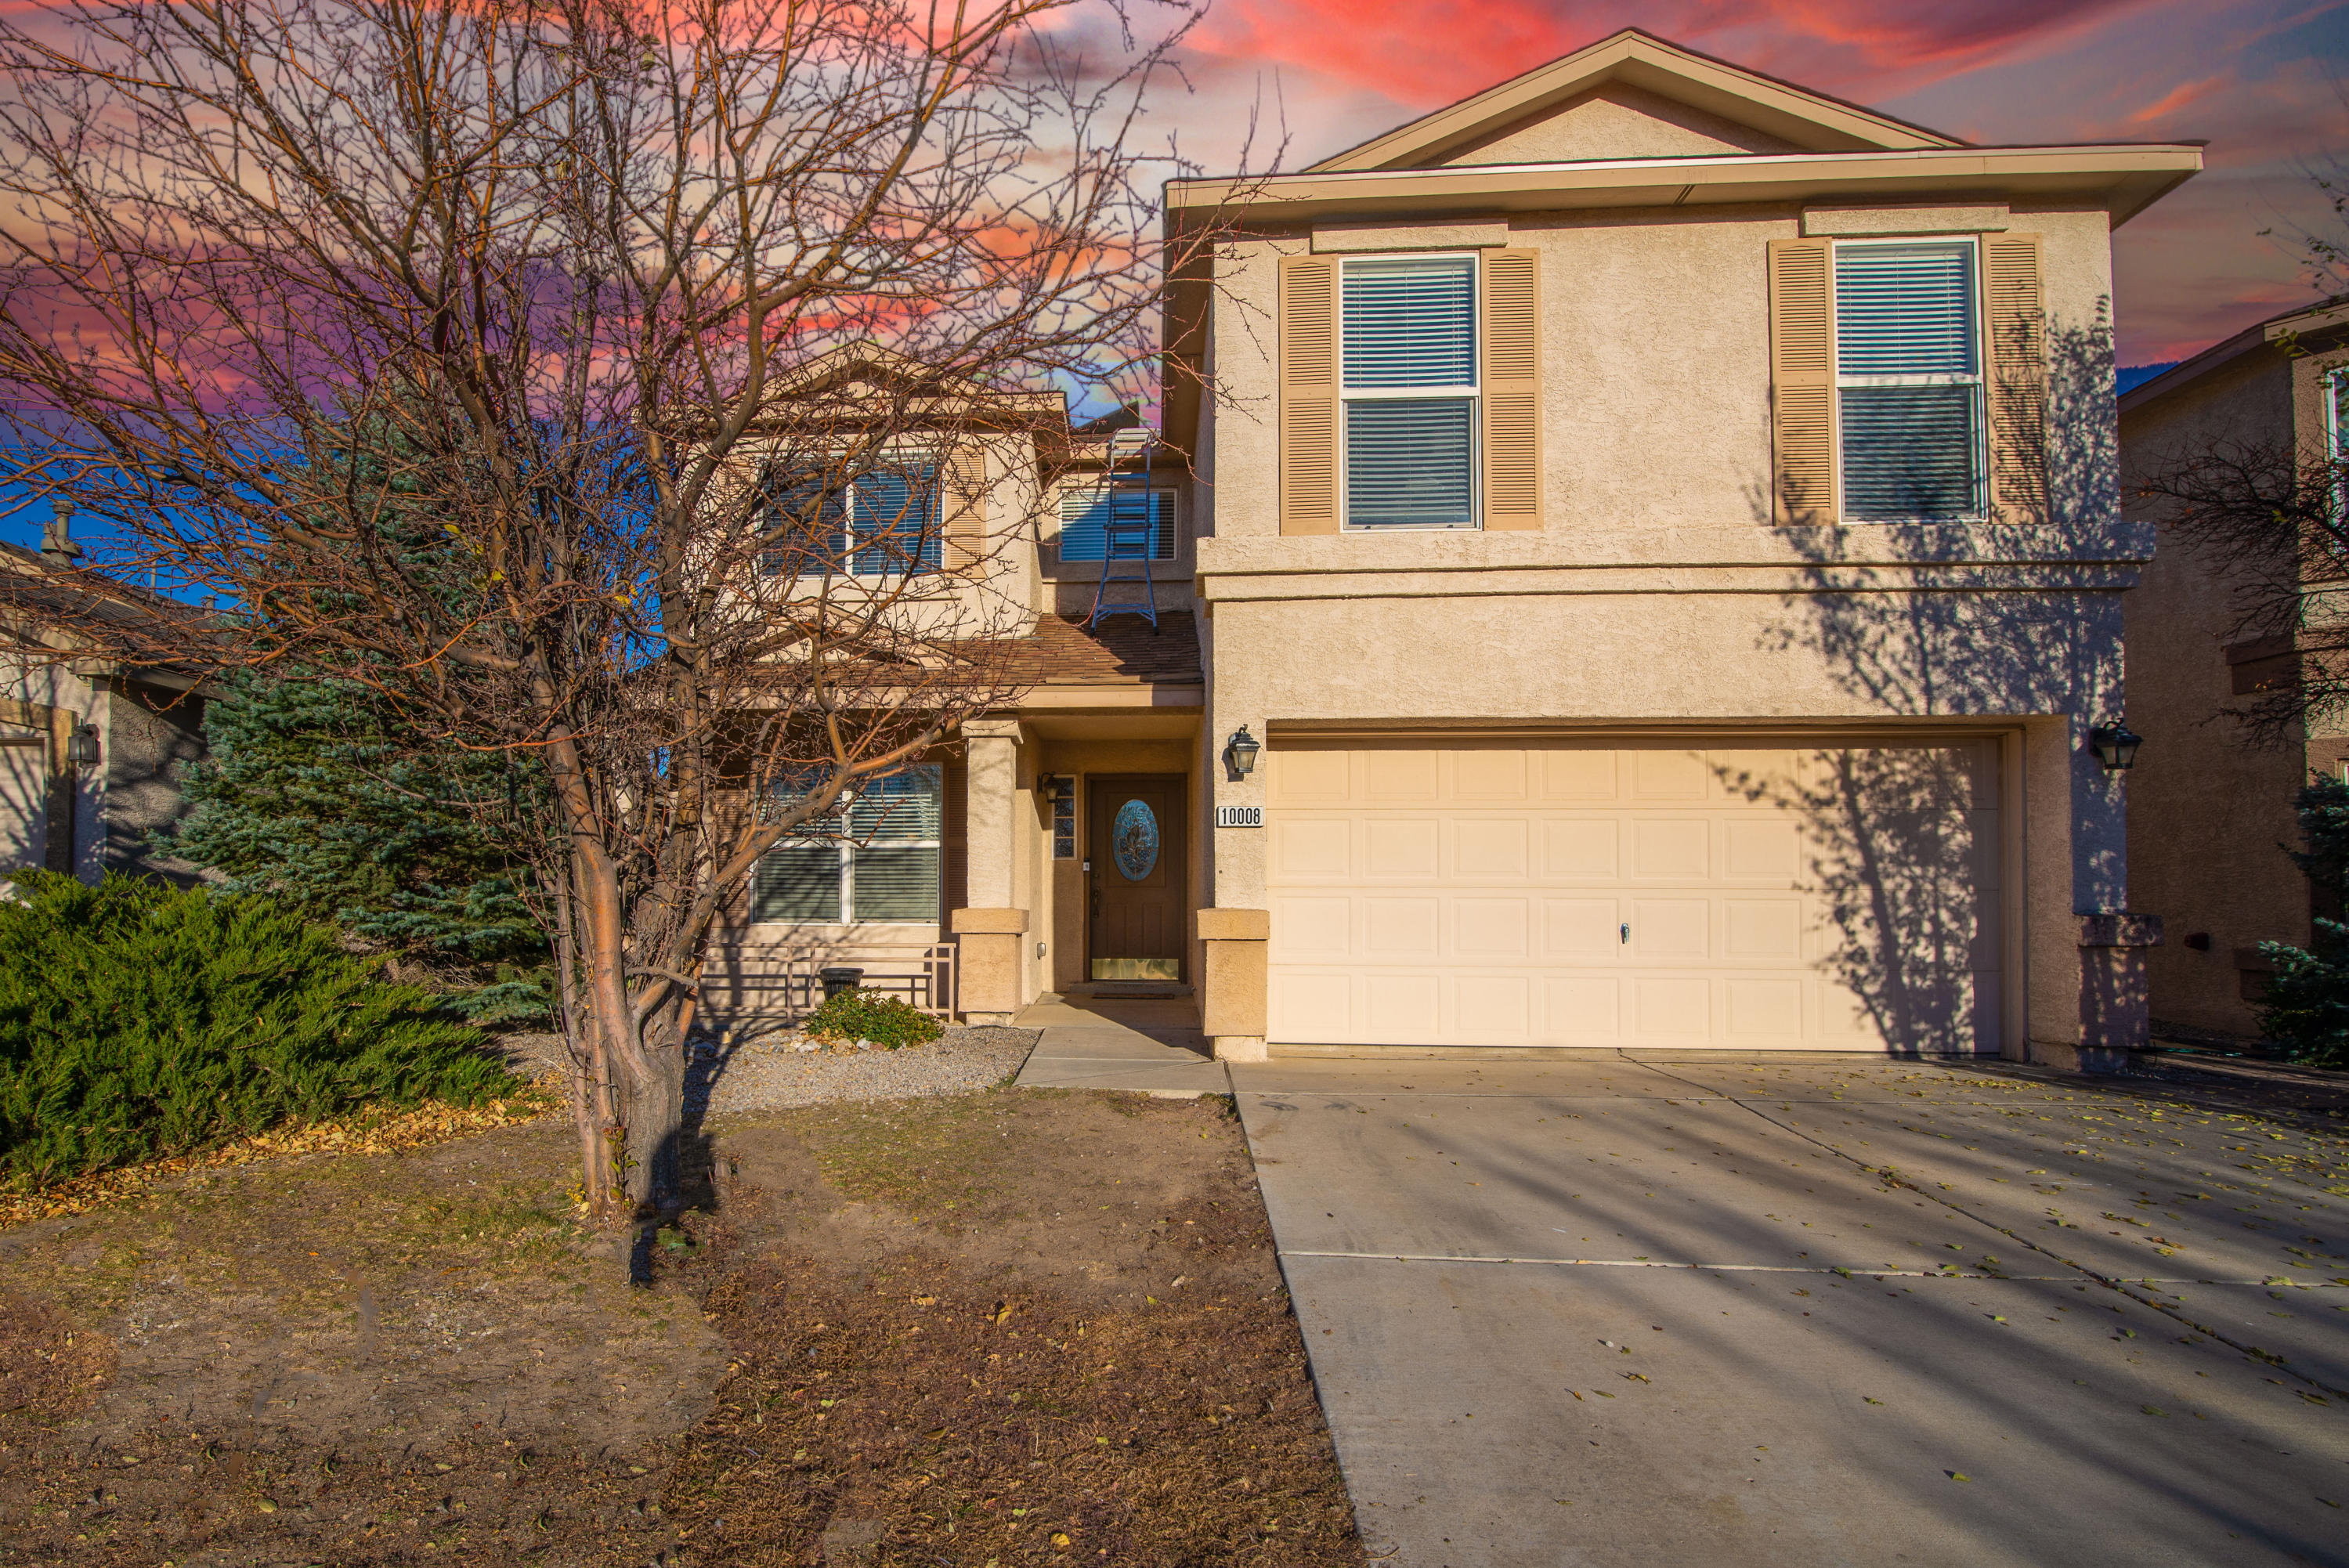 An amazing DR Horton quality home built on a low traffic Cul-de-sac. Gorgeous remodeled fireplace with airstone background warms in the winter months and refrigerated air cools in the summer. Outdoor hot tub will help you relax after a long day. Updated kitchen with newly installed stylish tile backsplash. This well-designed floorplan offers formal and informal living areas, plus an upstairs loft for more living space.Brand new roof was just installed last month. There is also a brand new water heater in the garage. Great location. Family oriented community has parks, tennis courts, a pool for great family fun. Come, see and take this opportunity for this beautiful home to be yours!